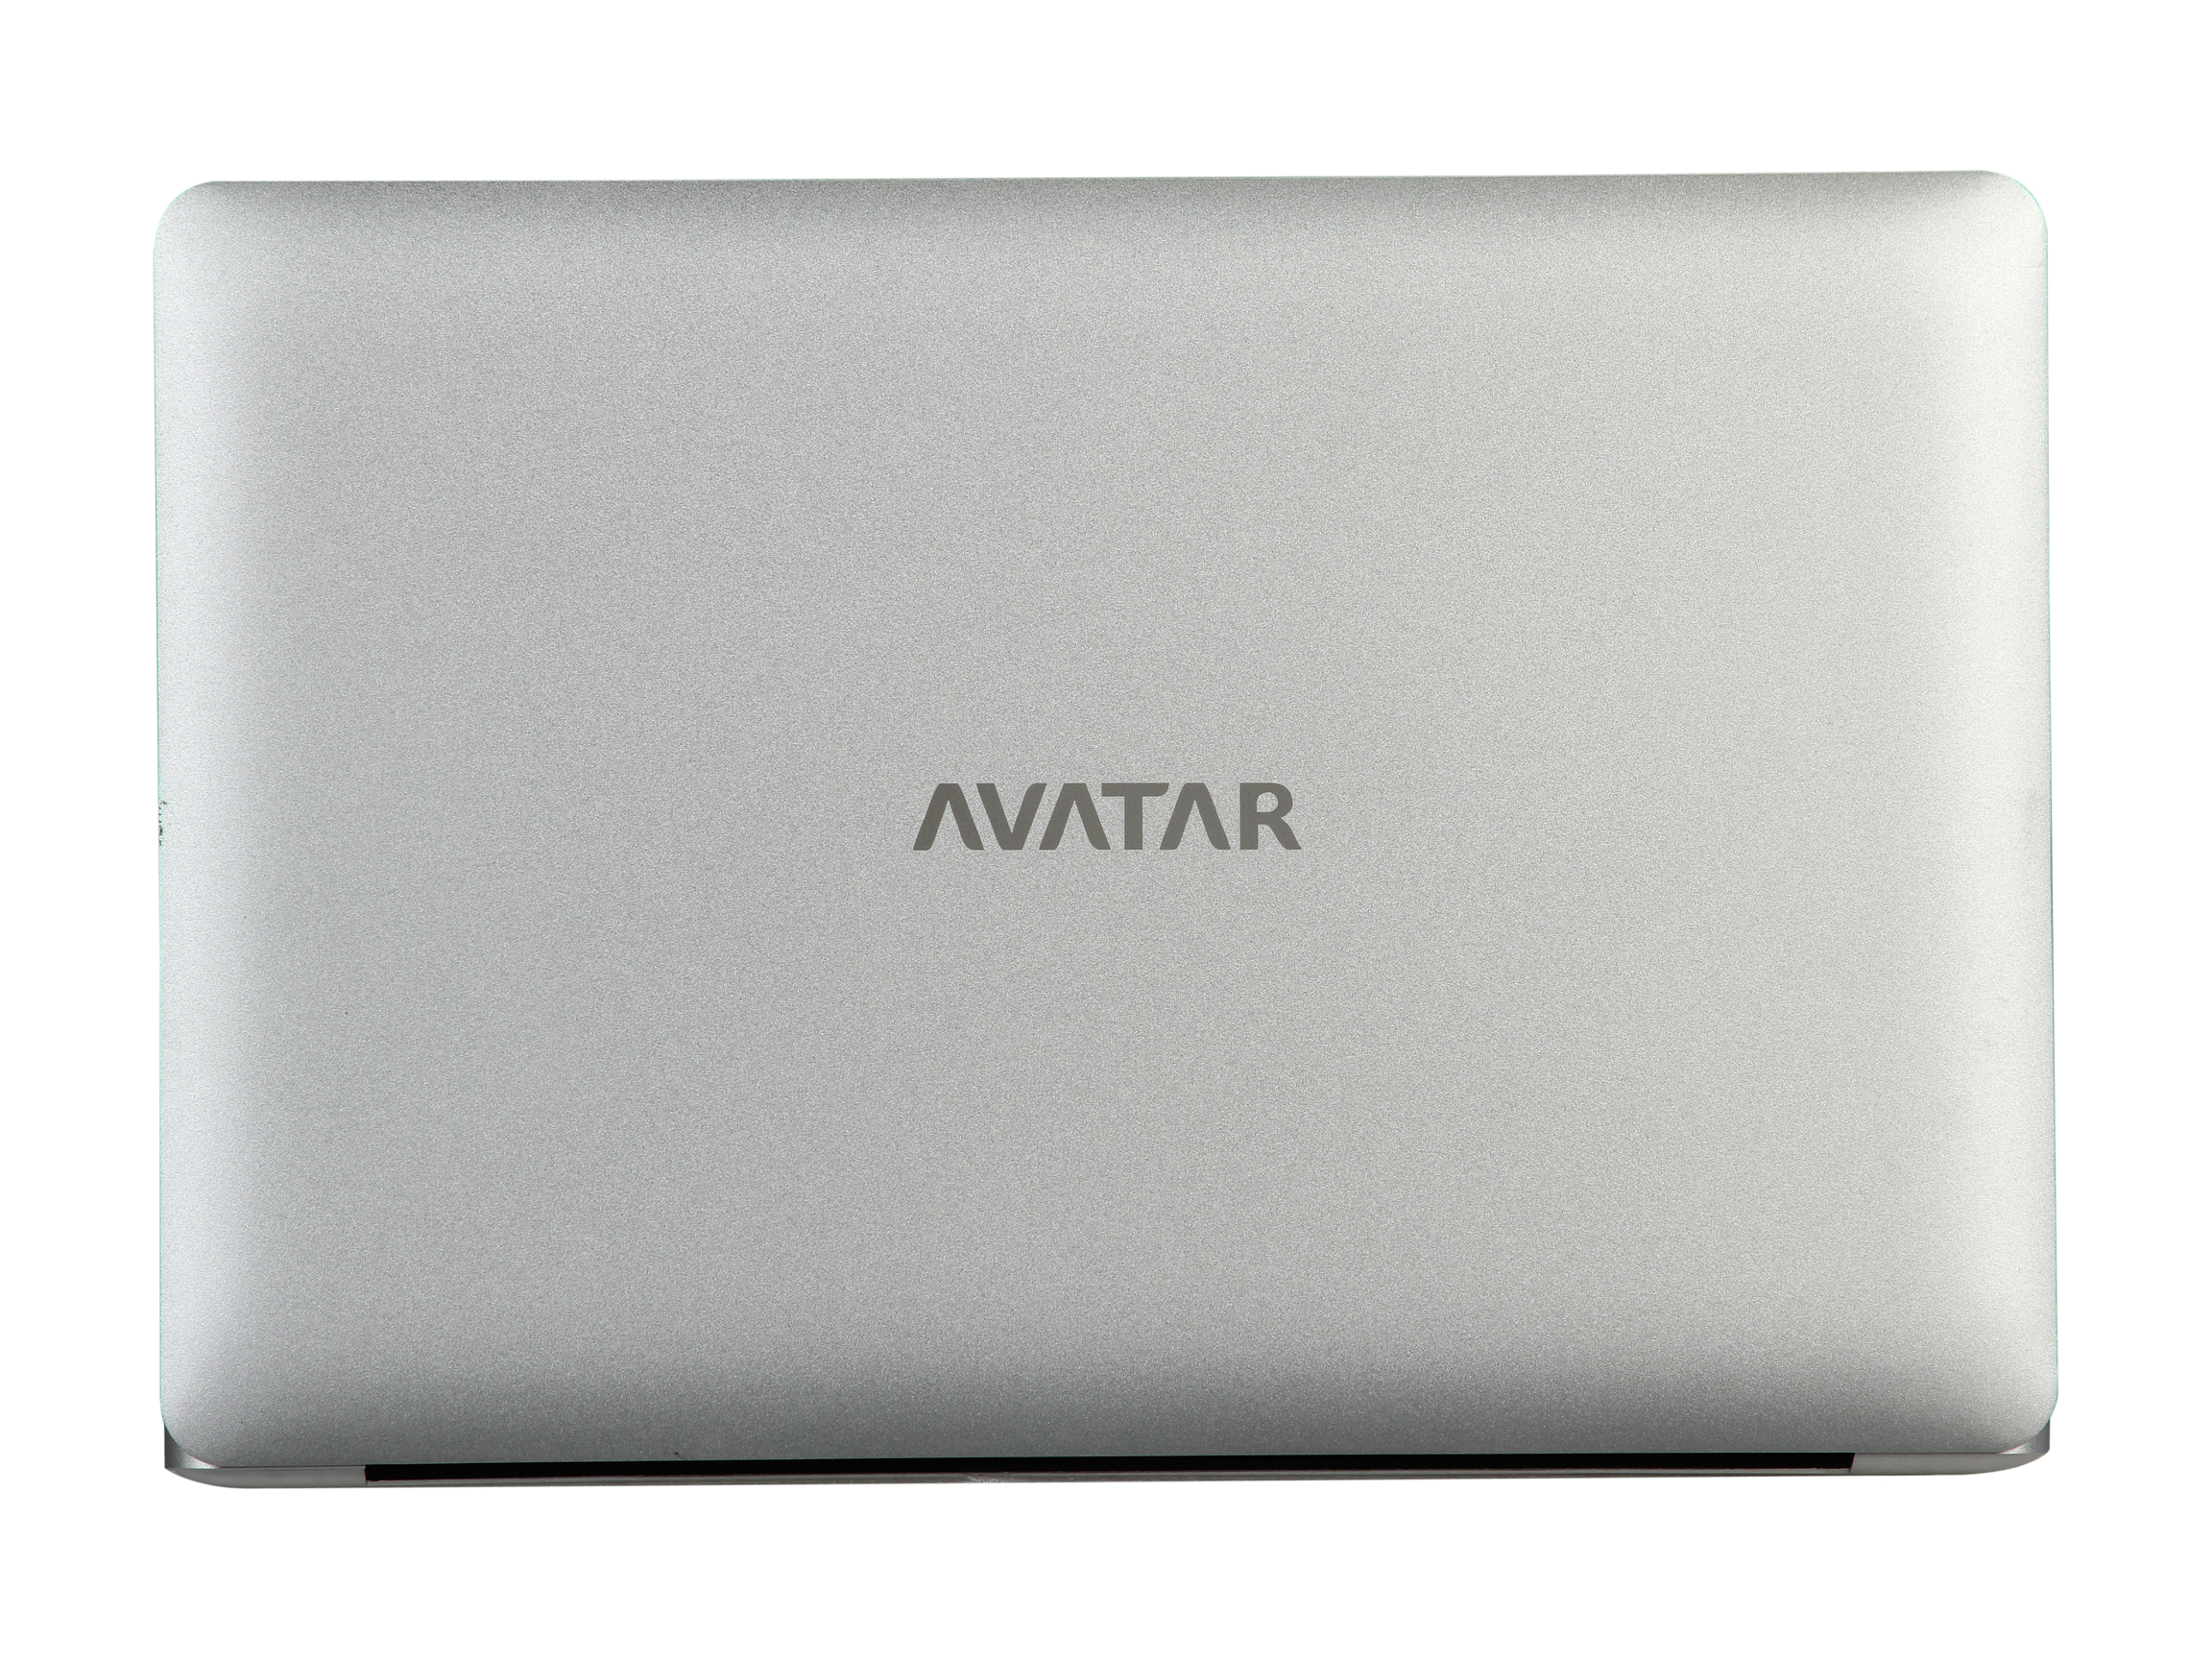 "Avatar AVIU-145A2 Intel Core i5 3317U (1.70GHz) 8GB Memory 500GB HDD 32GB SSD 14"" Ultrabook Windows 8 64-bit"